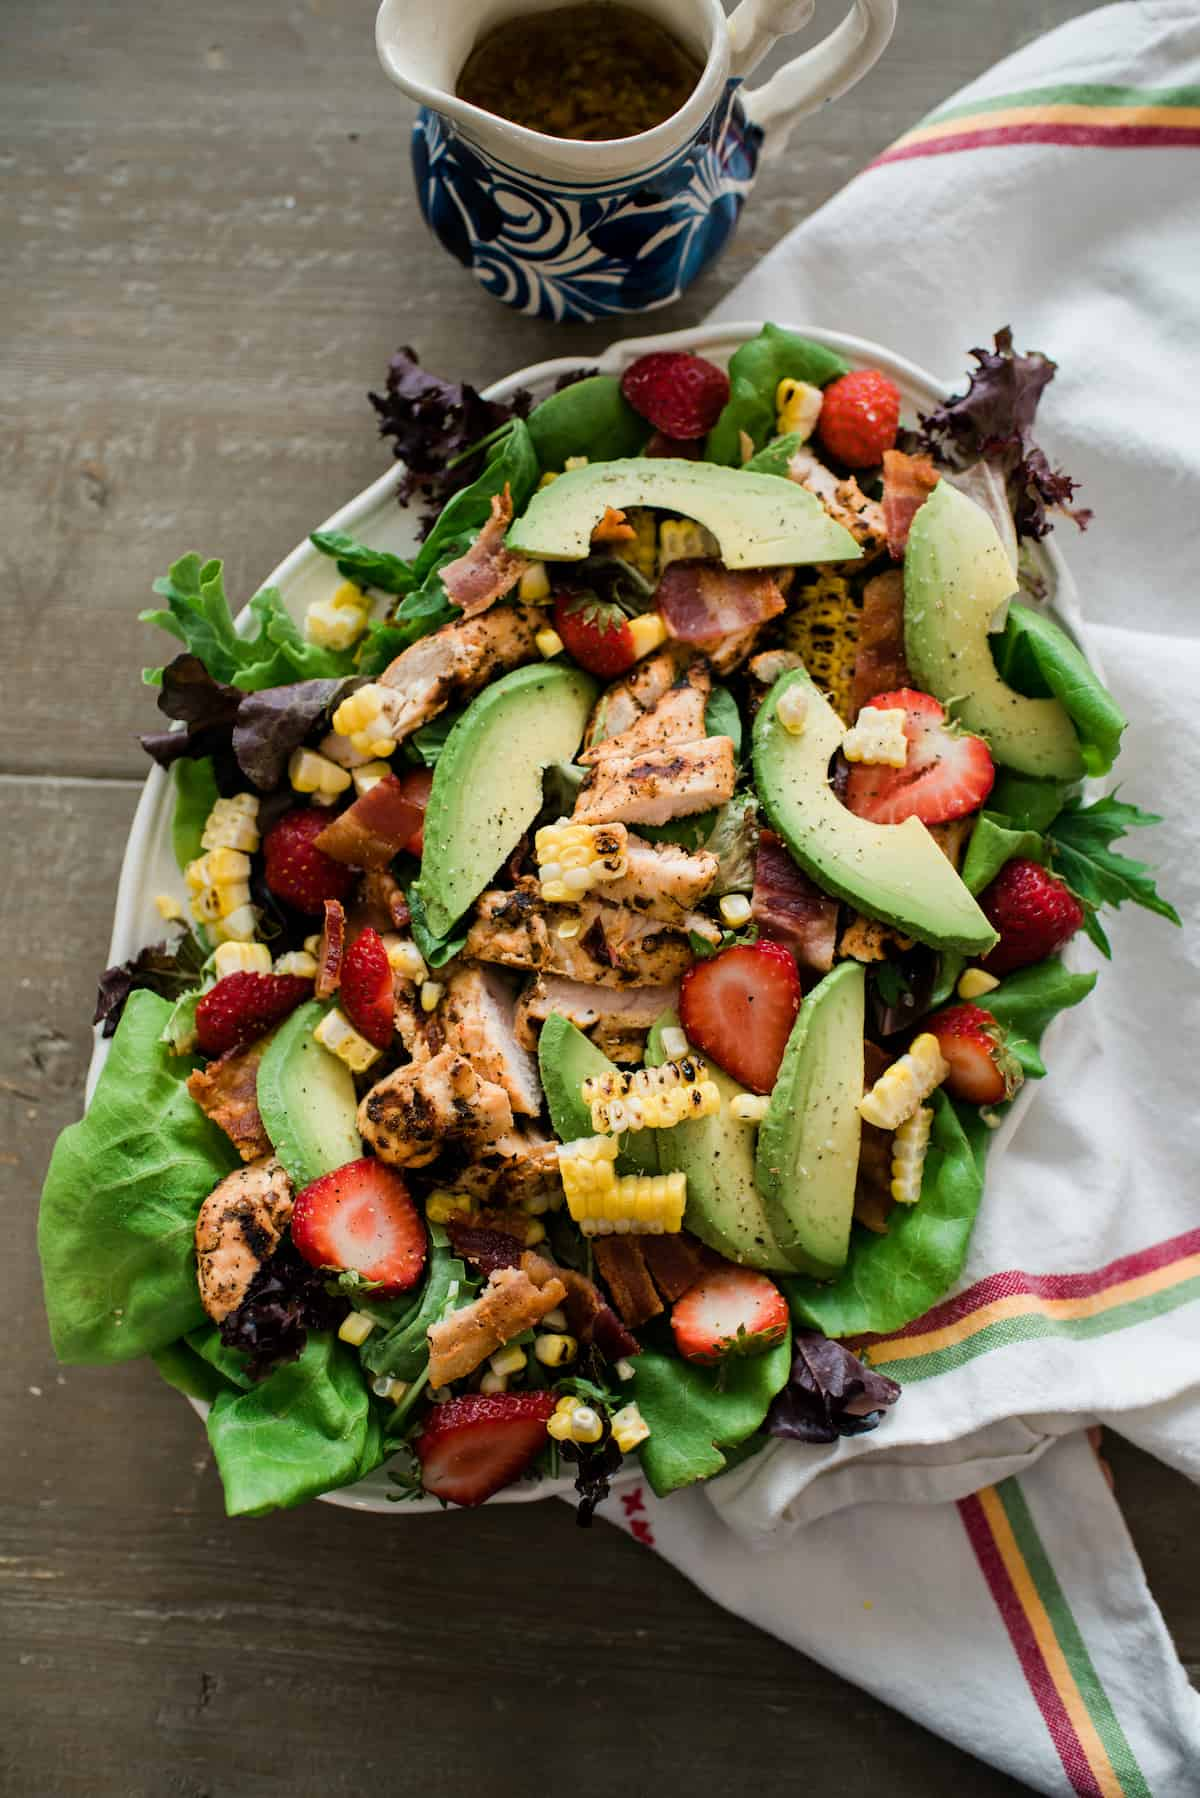 Mexican Cobb salad arranged on a large white serving platter